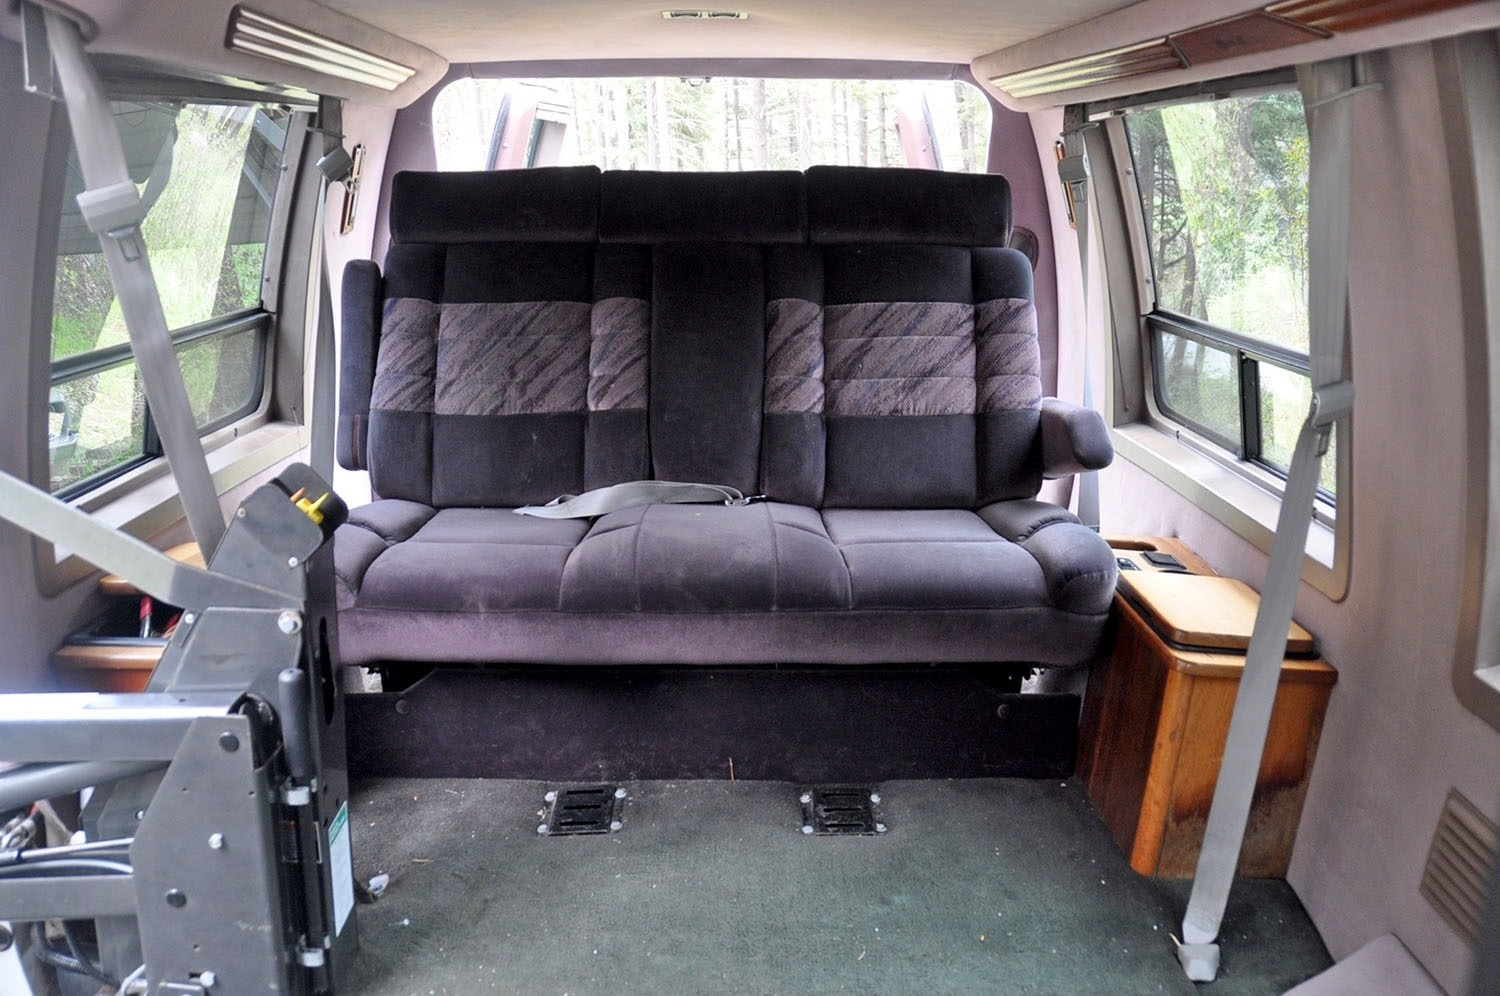 DIY Campervan Conversion on a Tiny Budget in Less Than 1